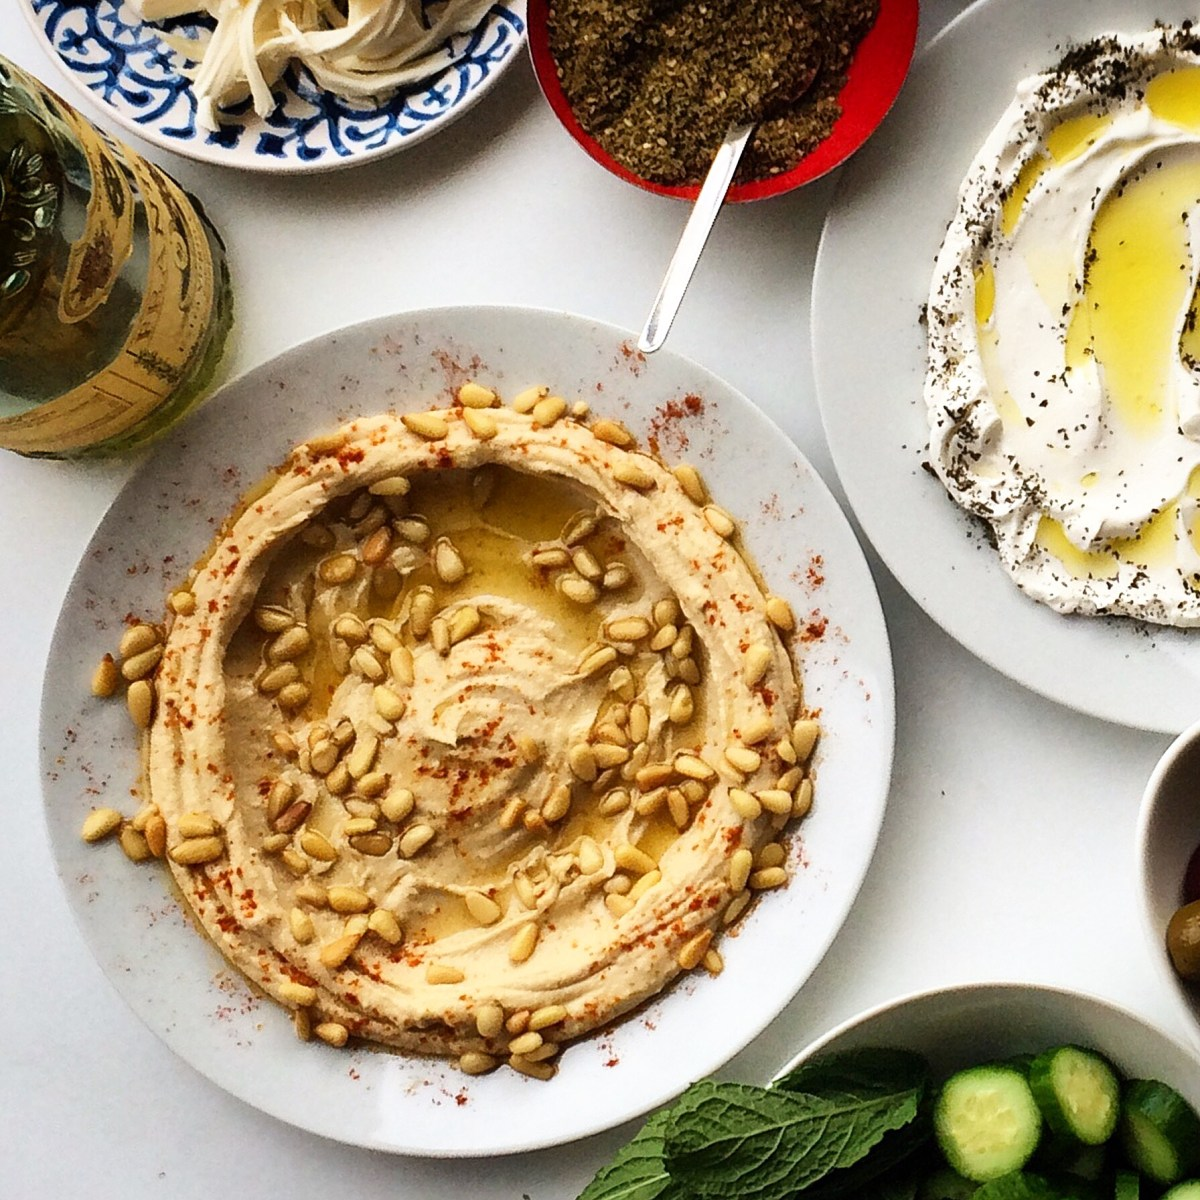 A Simple Trick for Super Smooth Hummus